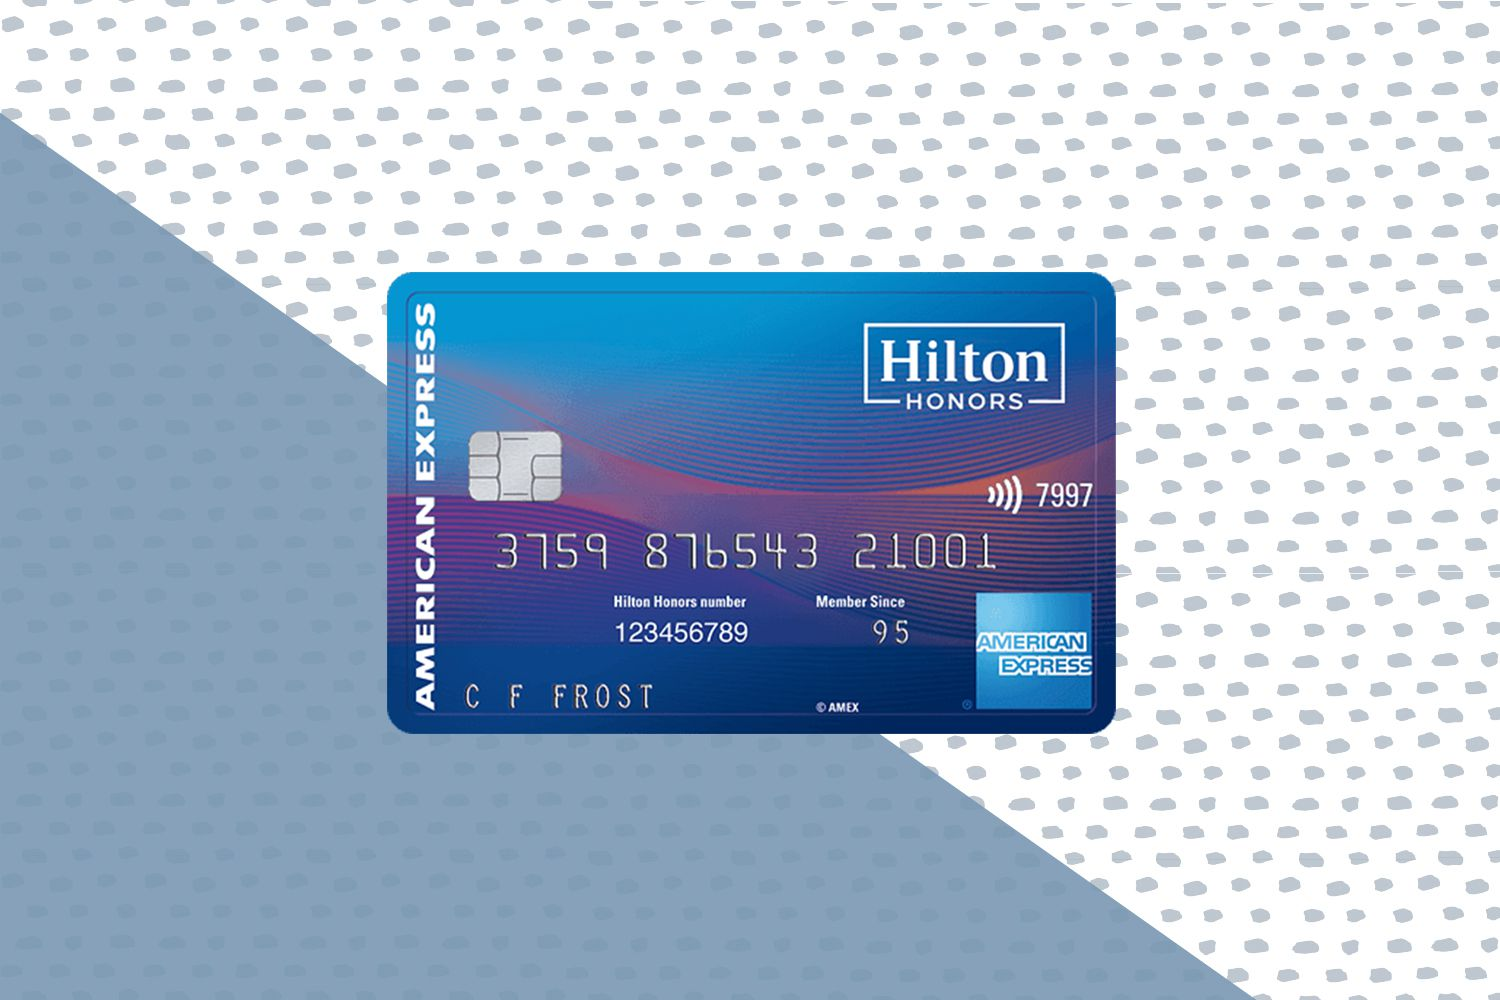 When people go shopping for a new credit card, they want to make a decision based on what their particular needs are. Hilton Honors Amex Surpass Review